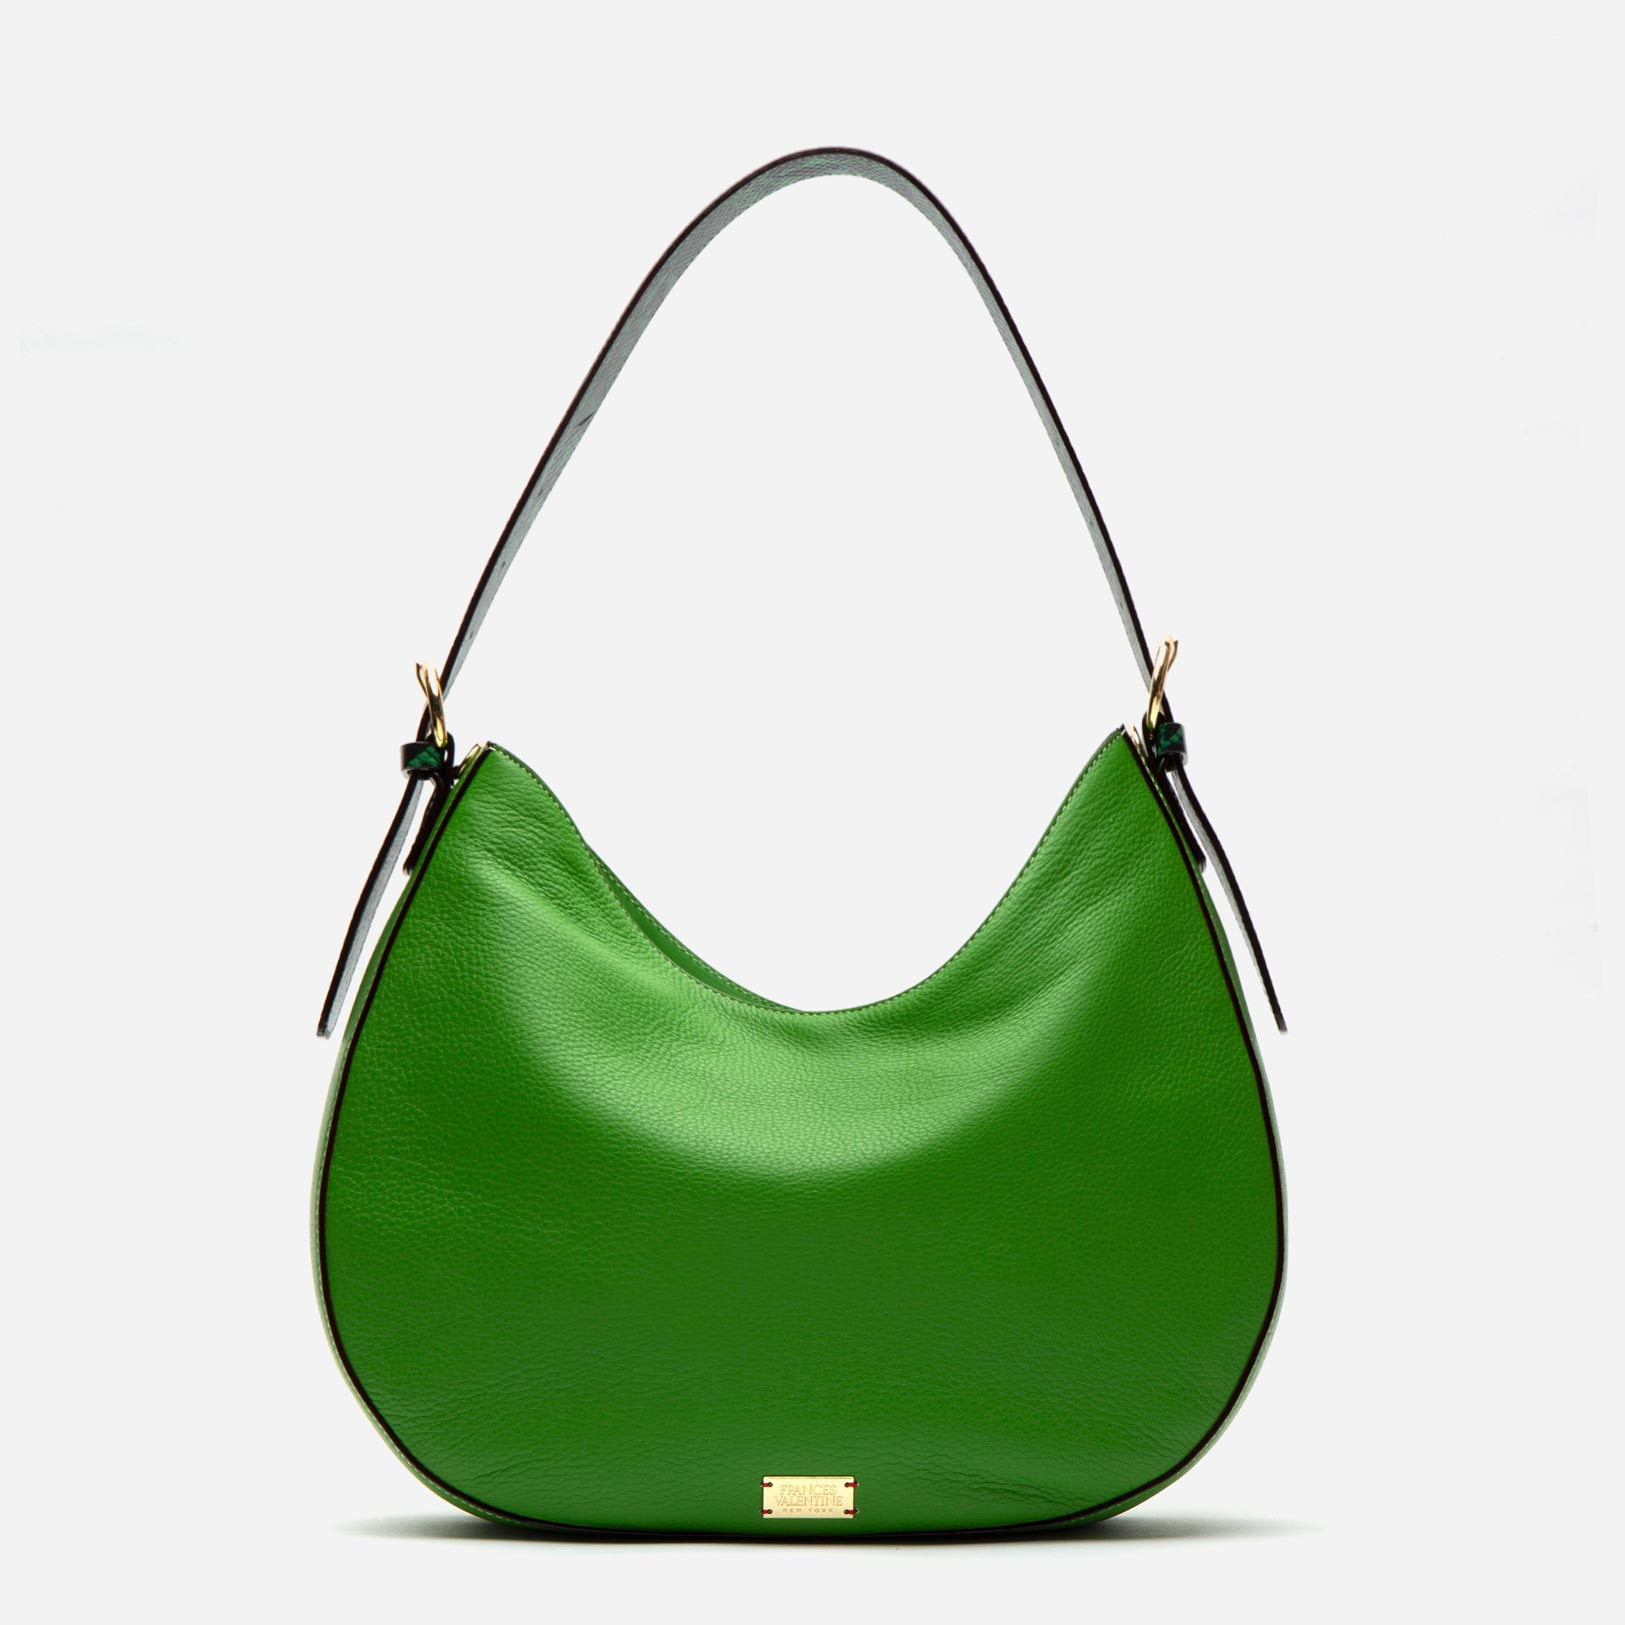 Honey Tumbled Leather Hobo Green - Frances Valentine